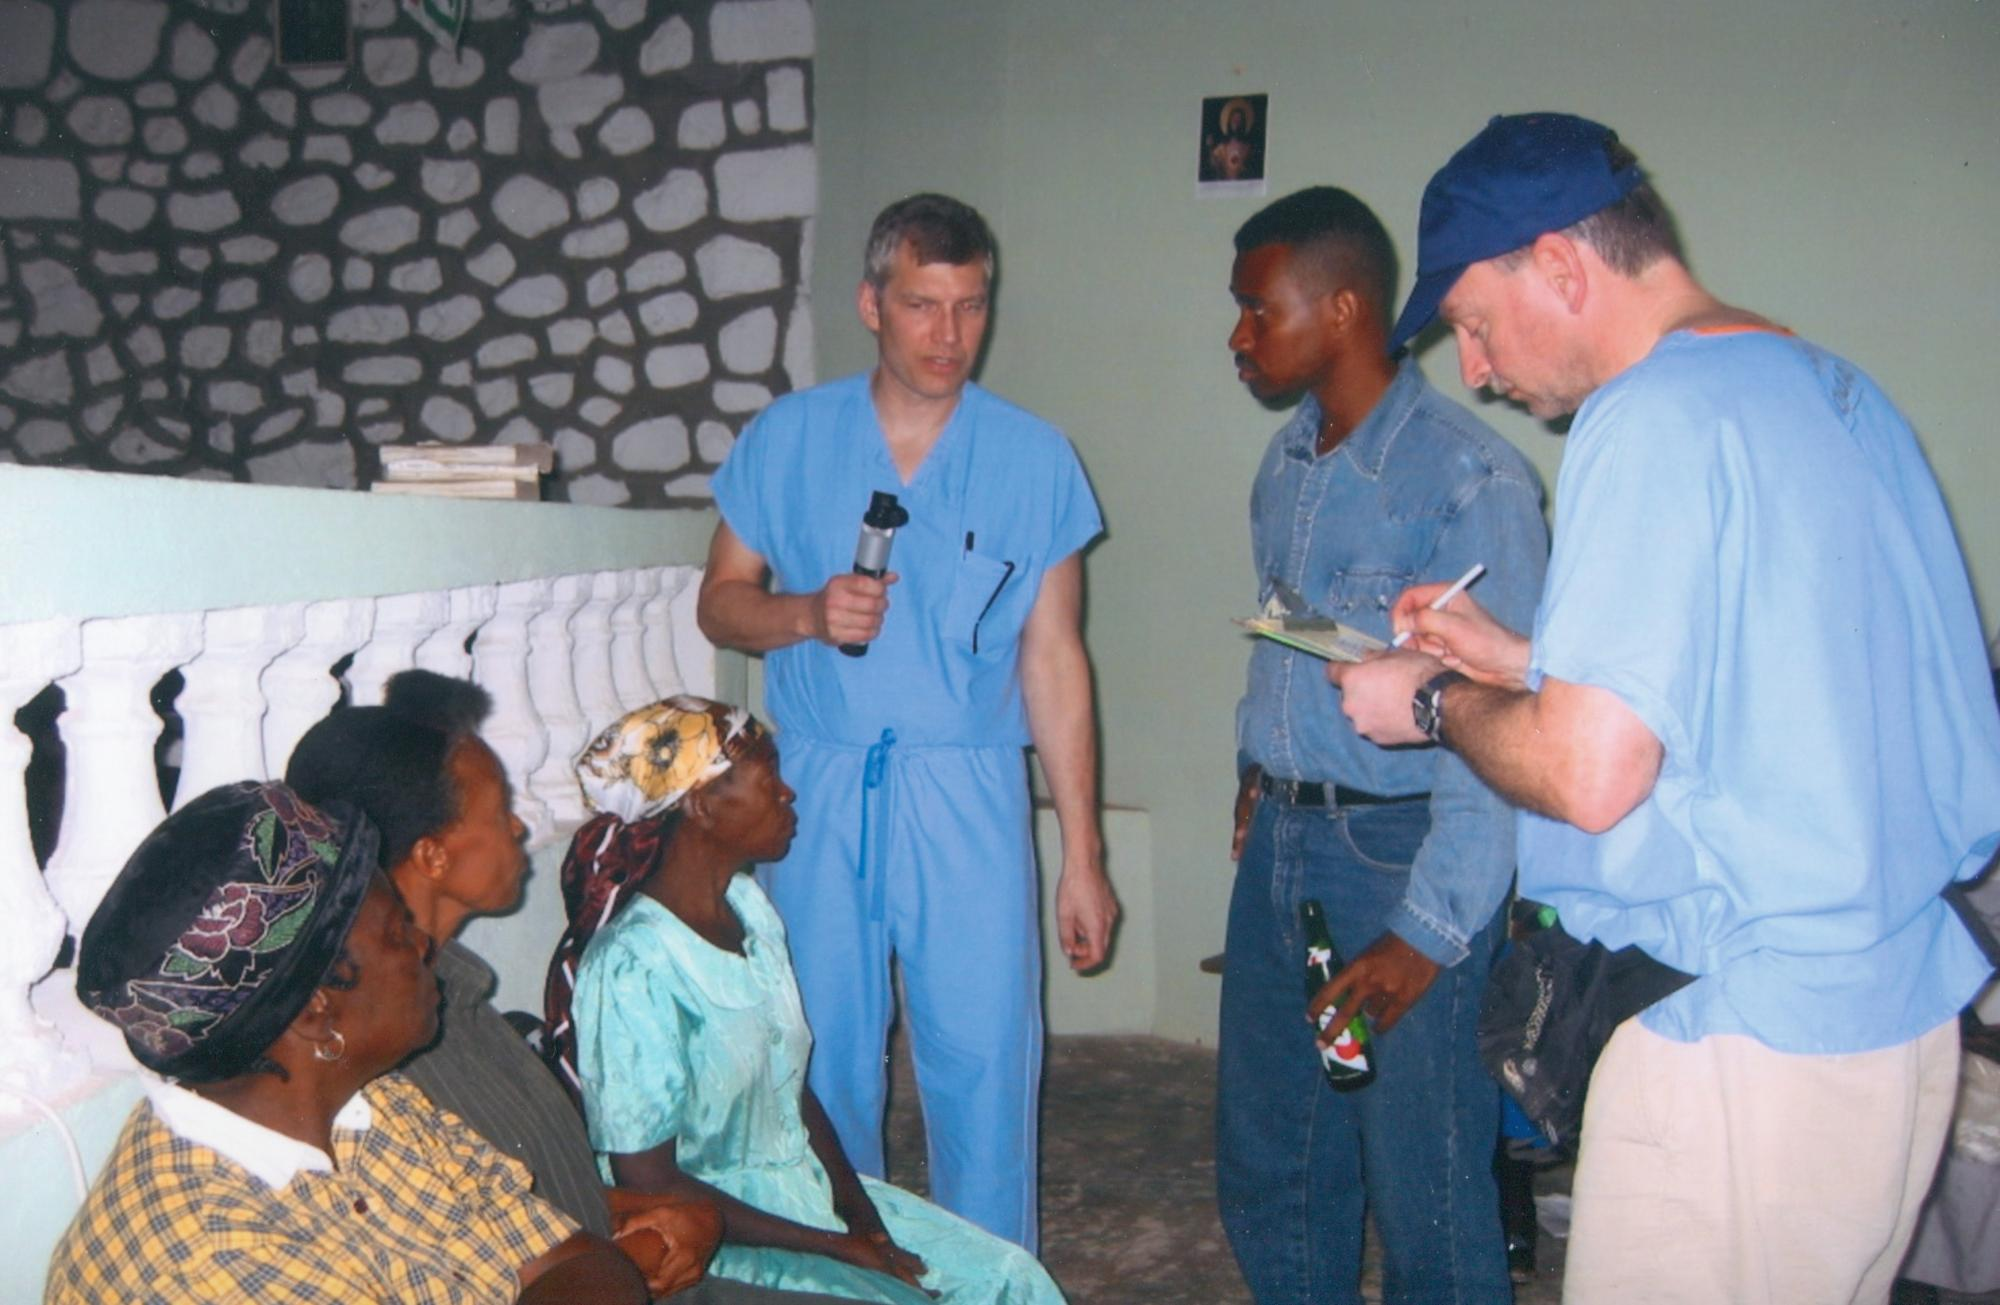 Education_and_pt_care_by_team_members_circa_feb_2003_image46.jpg